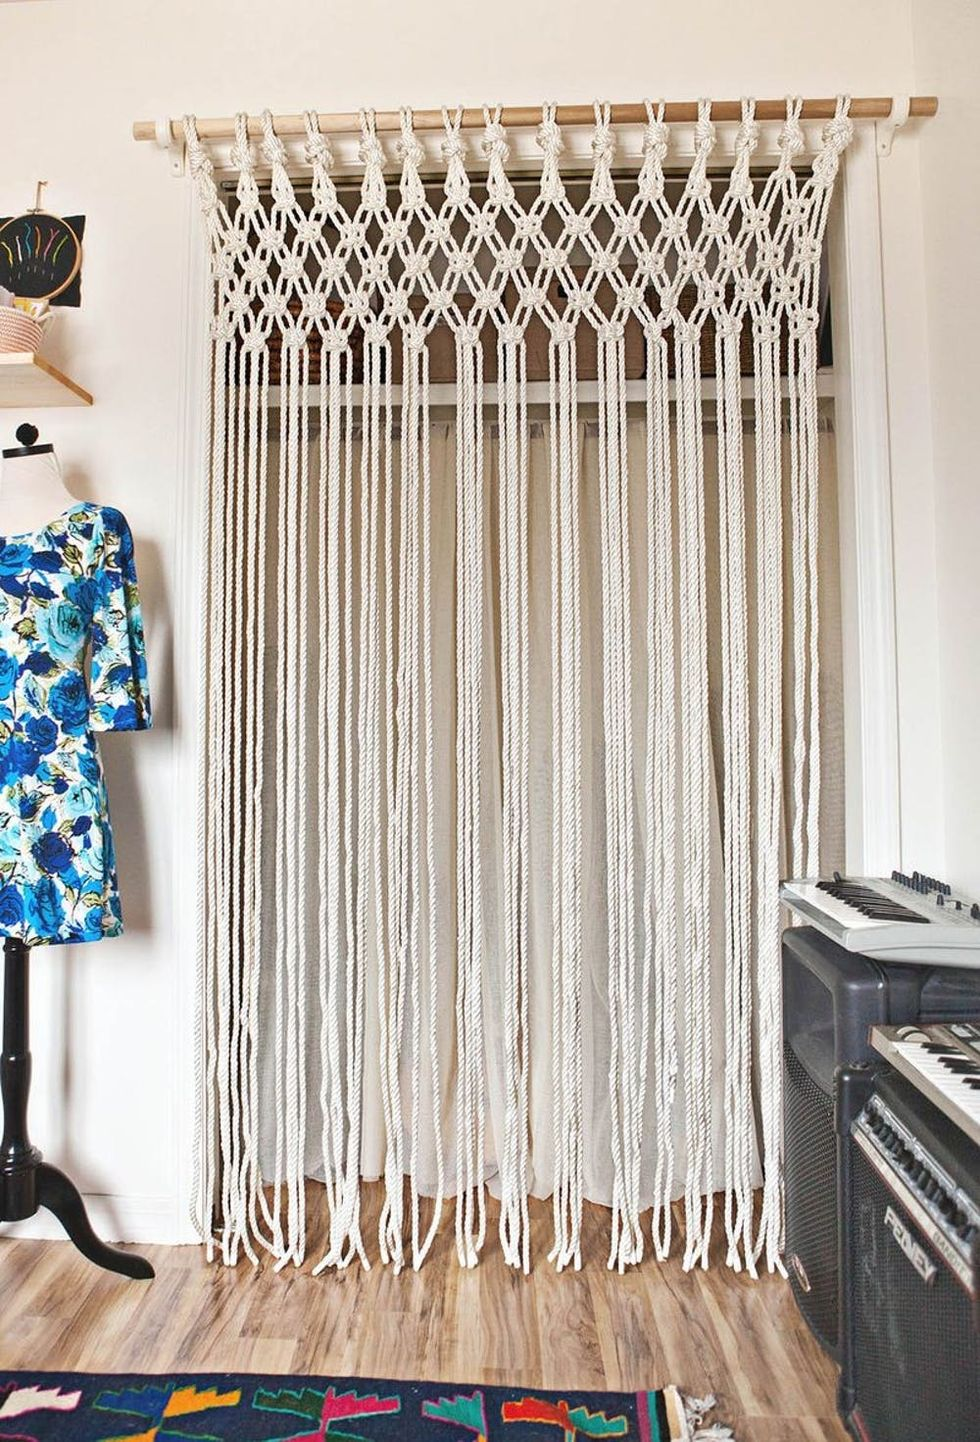 Dress Your Windows With These 16 Curtain Alternatives - Brit + Co